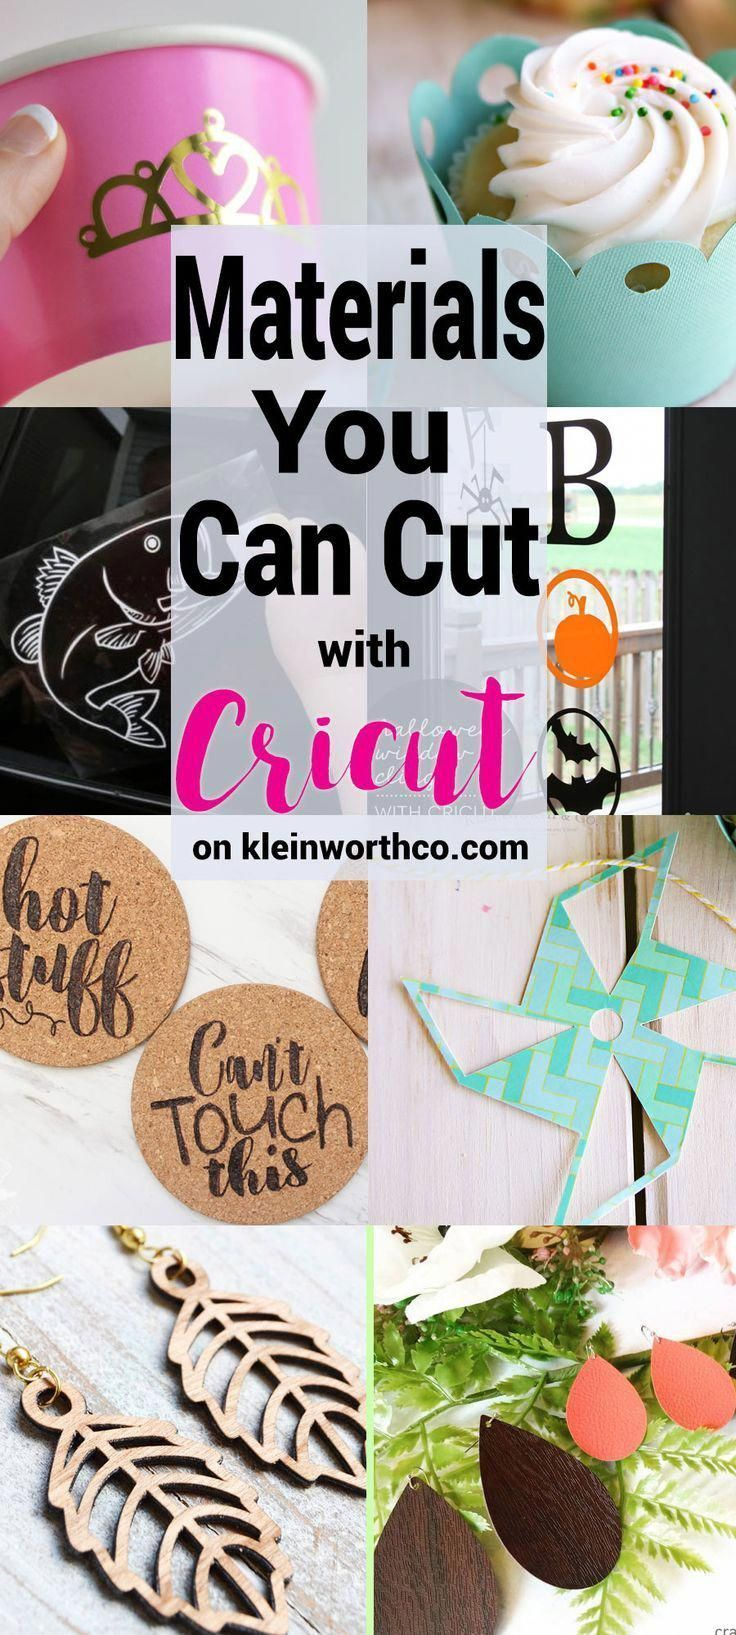 Wondering what Materials You Can Cut with Cricut? Check out all these super awesome projects made with so many different materials & cut with Cricut. #artprojectideas – Jean Arana